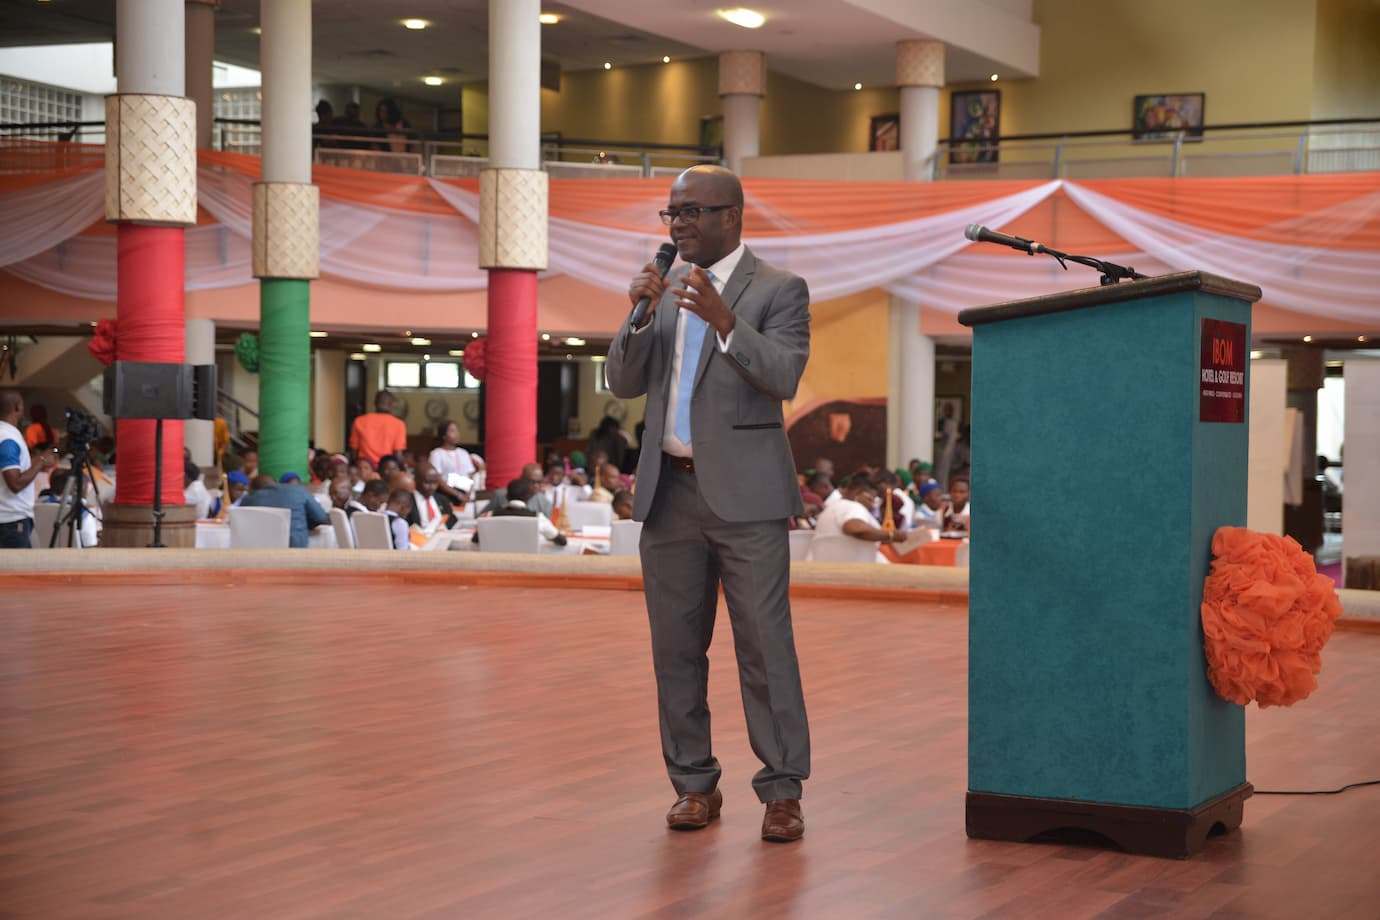 Dr. Titus Udom speaking on what he has done on becoming a mentor